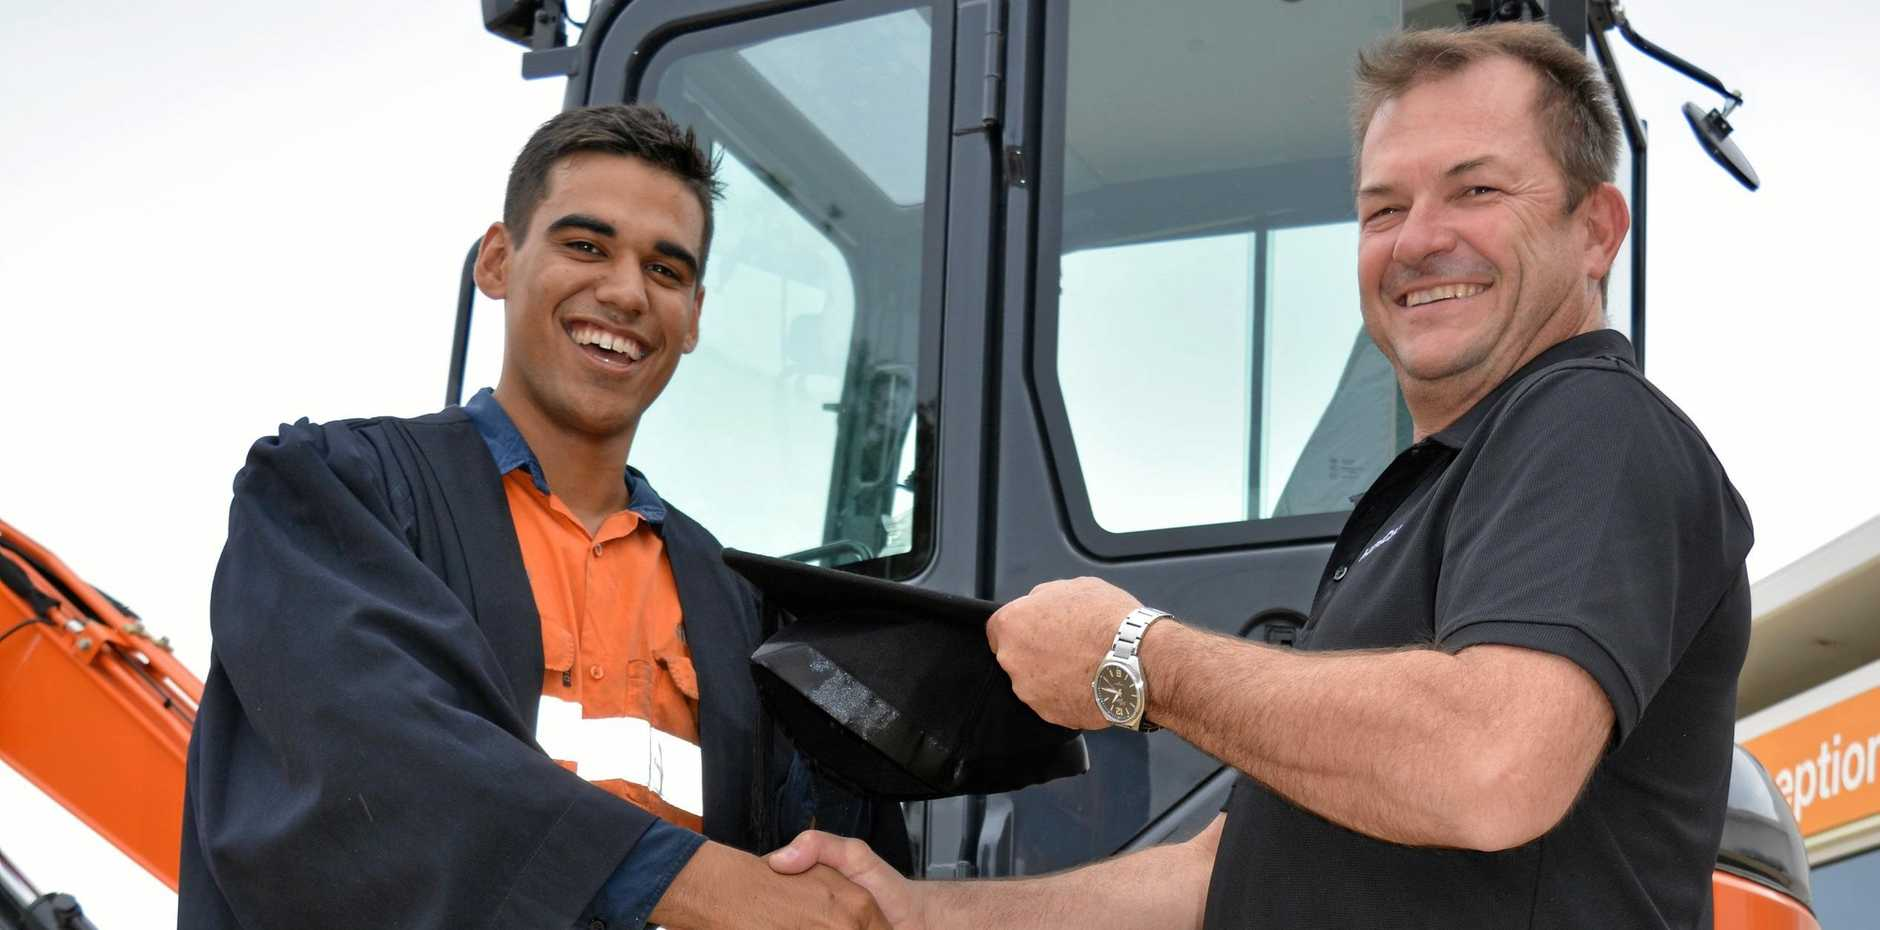 EXCITED: CQUniversity student Jackson Morgan (with Hitachi Workshop supervisor Geoff Wills) will be graduating at the first ceremony in Emerald with a Certificate III in Mobile Plant Technology.